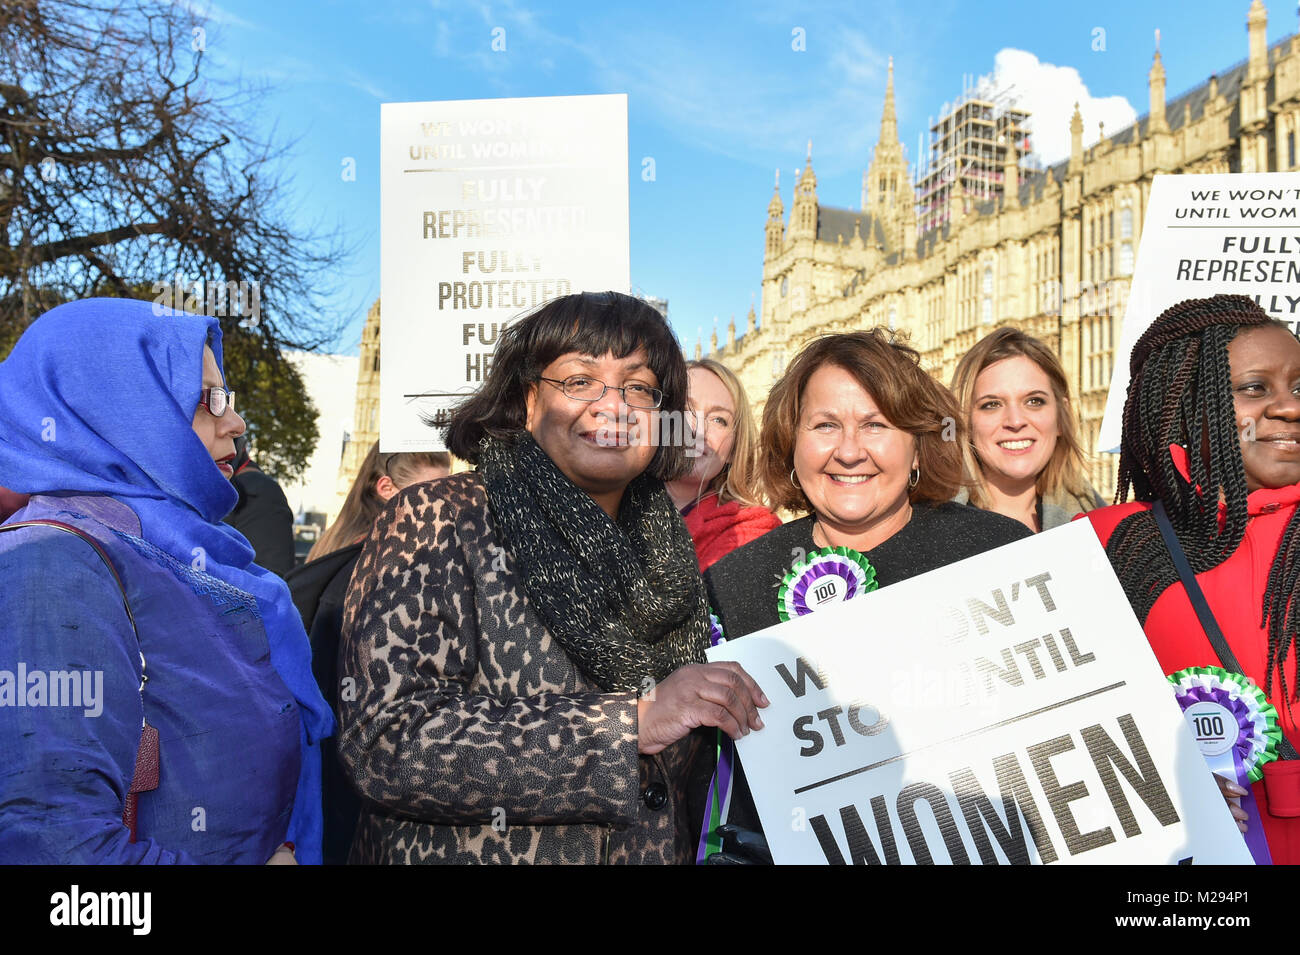 London, United Kingdom. 6 February 2018. Launch of Labour campaign to celebrate 100 years of women's suffrage.  - Stock Image